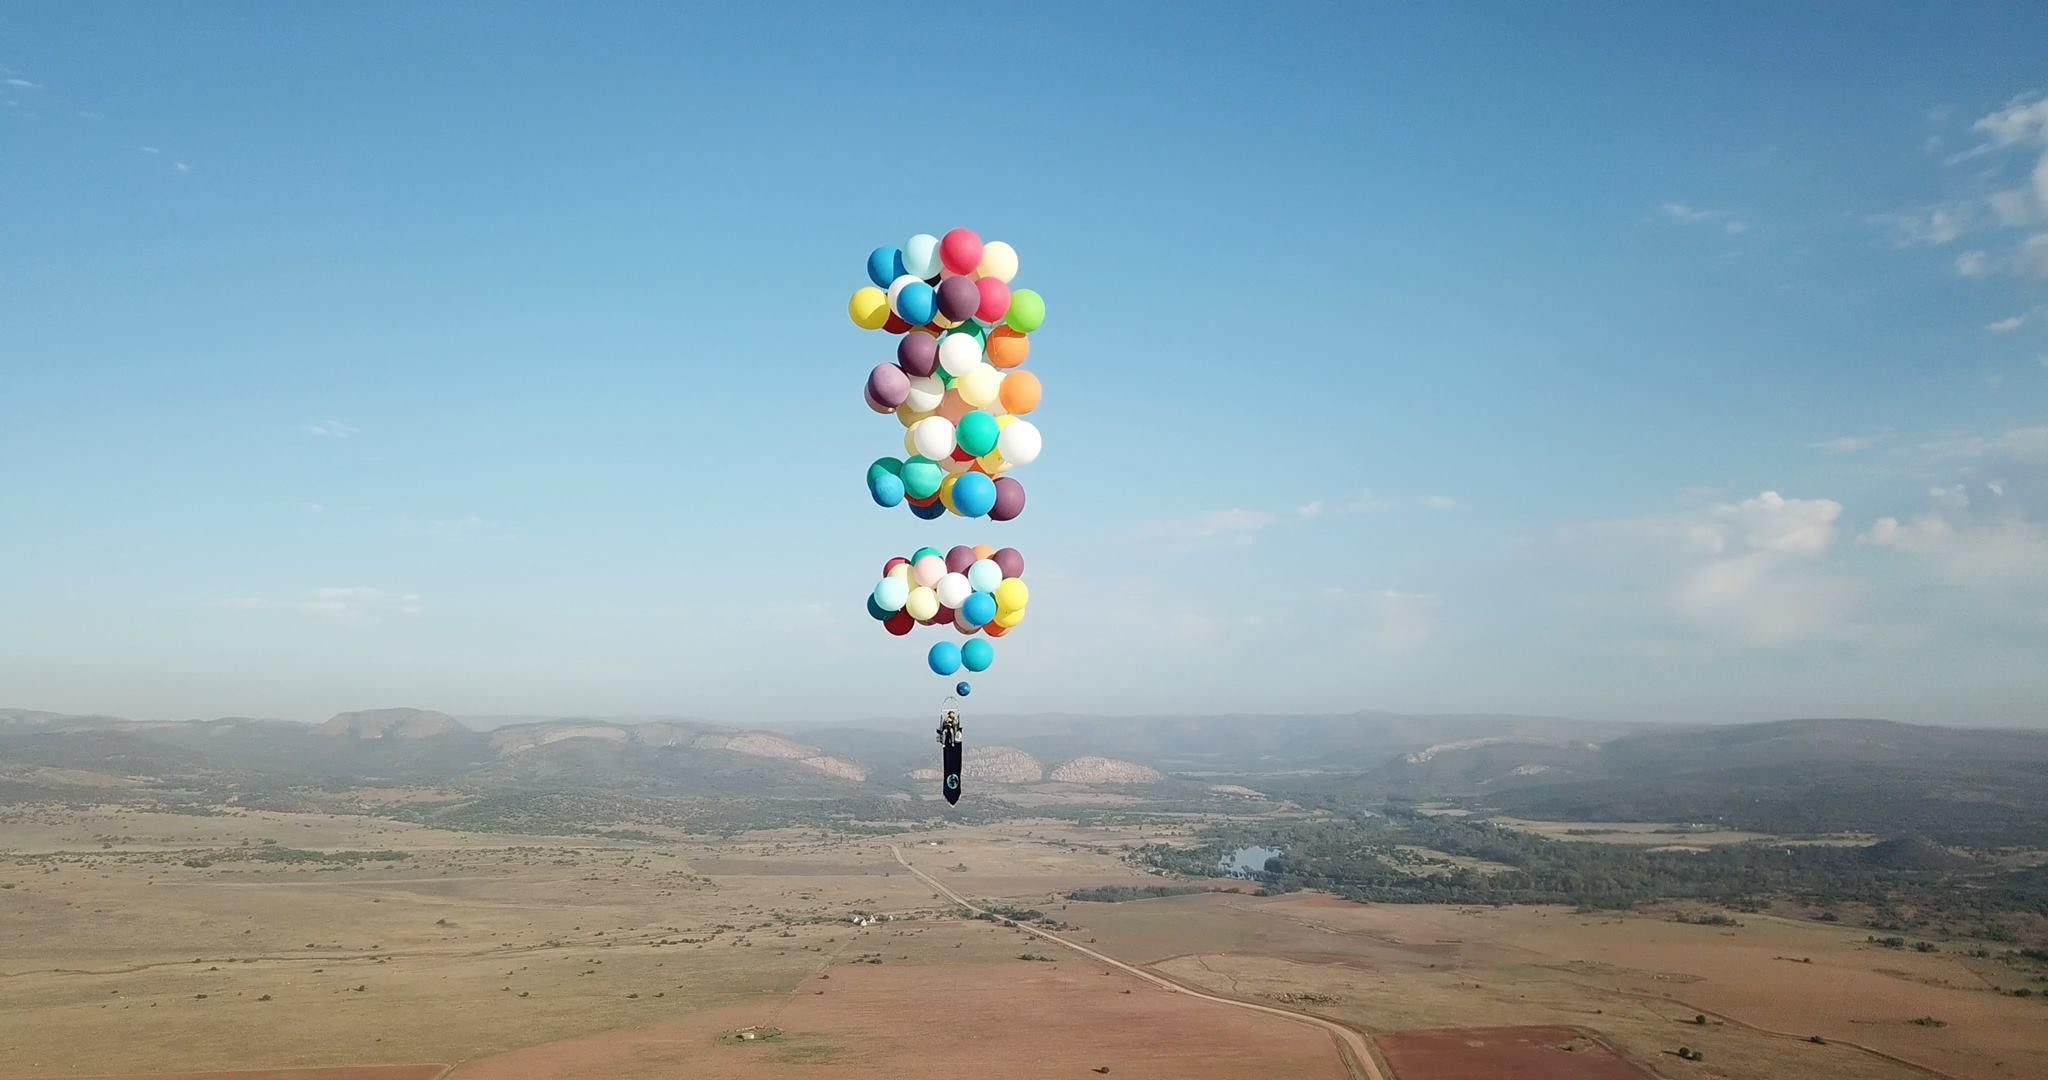 Man takes flight 8,000 feet up in the air using 100 helium